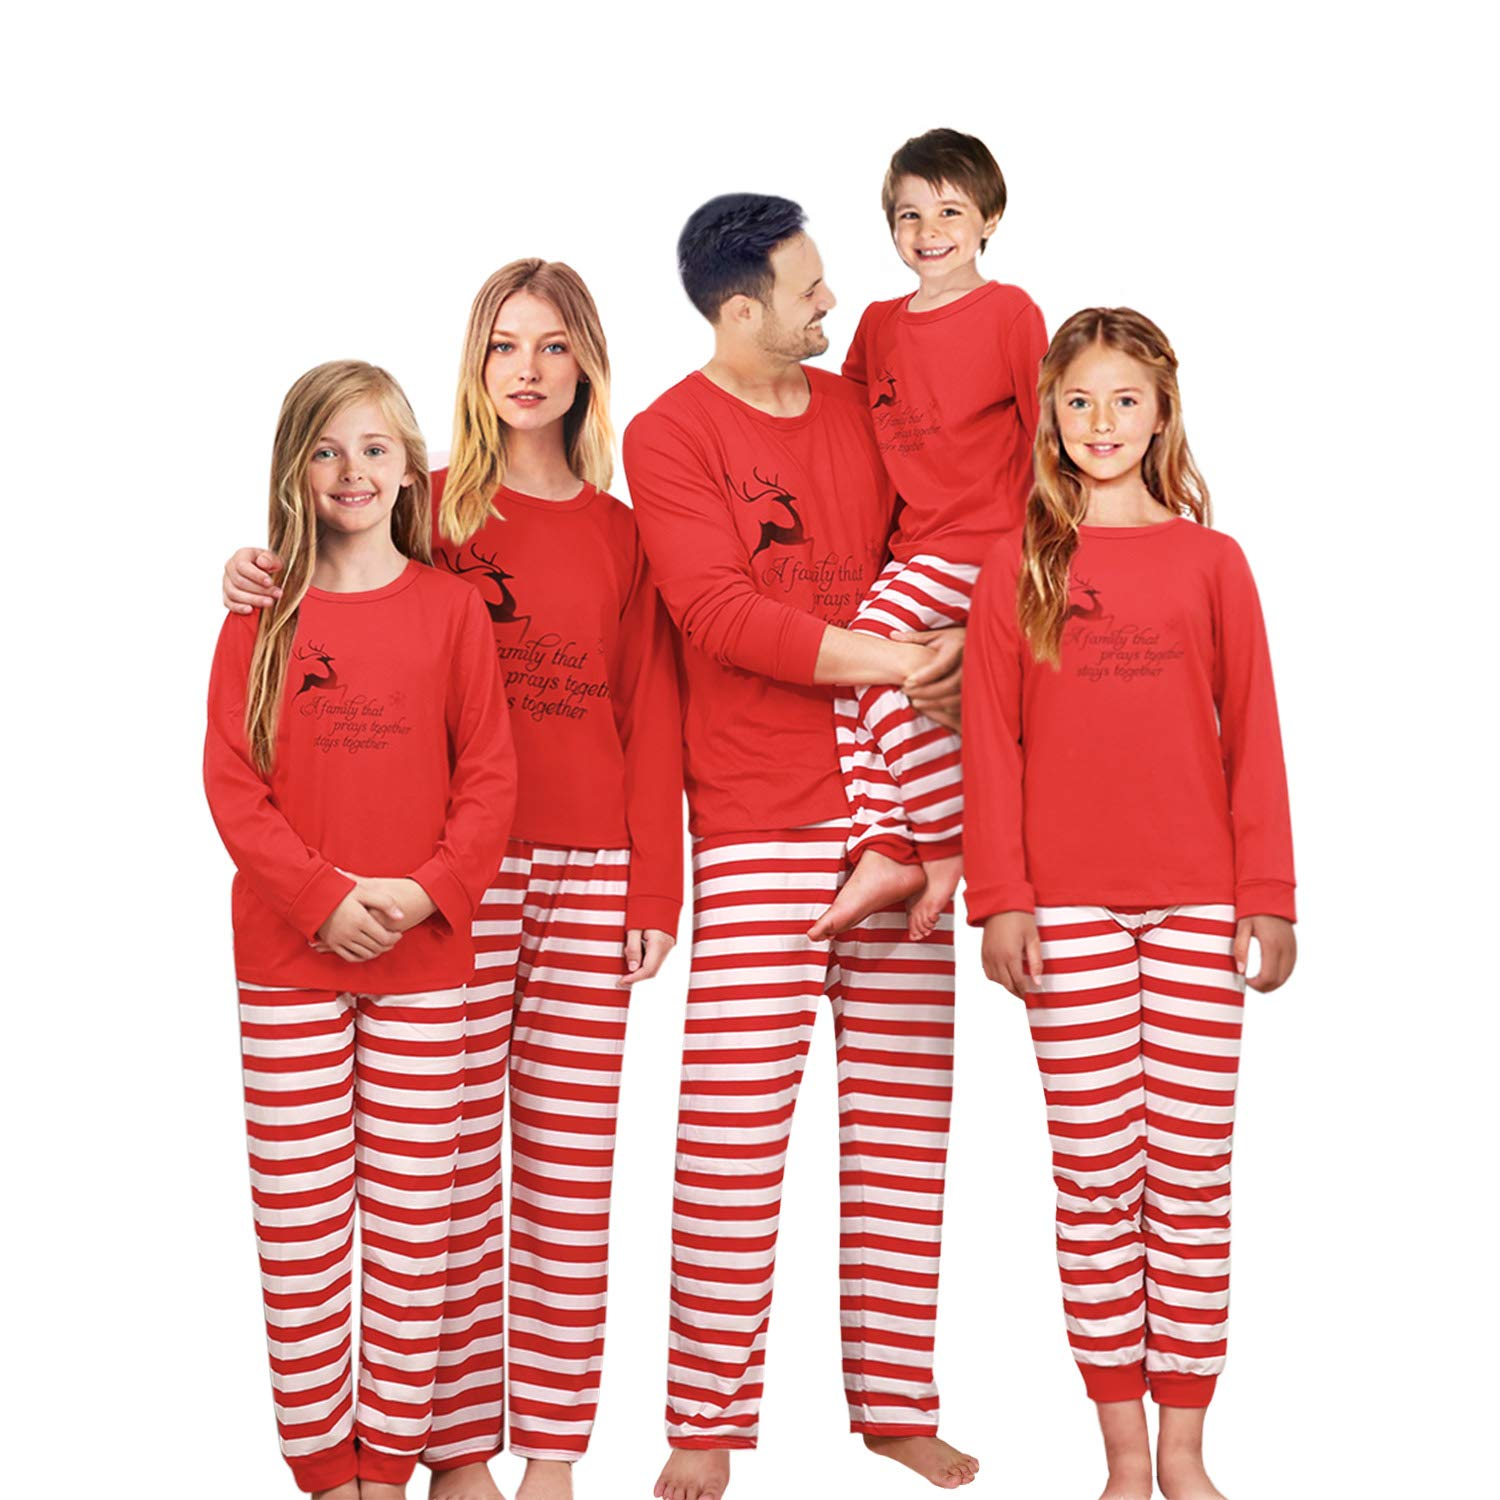 Galleon - Family Matching Christmas Pajama Set Xmas Pyjamas Sleepwear Pjs  Cotton Stripe (Women XL) 44a3b6834